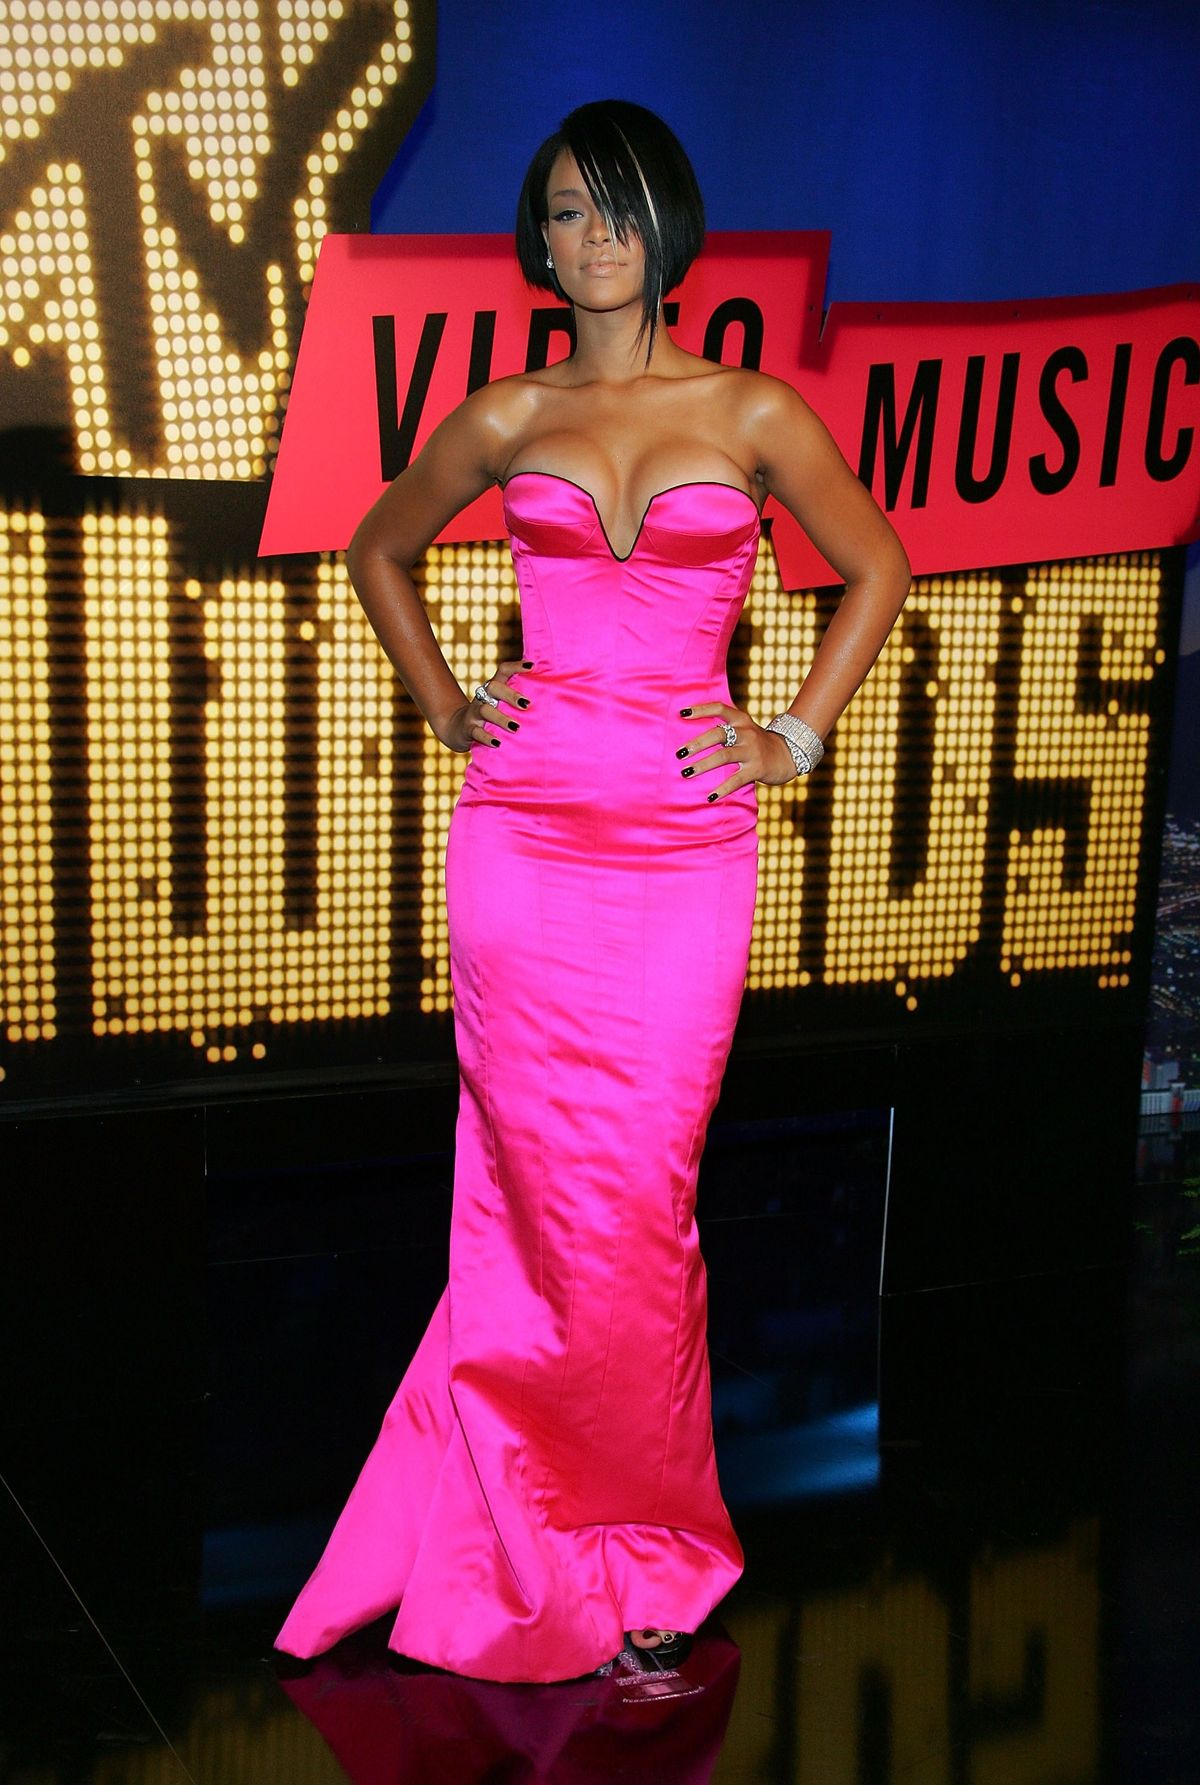 LAS VEGAS - SEPTEMBER 09:  Singer Rihanna arrives at the 2007 MTV Video Music Awards held at The Palms Hotel and Casino on September 9, 2007 in Las Vegas, Nevada.  (Photo by Ethan Miller/Getty Images)